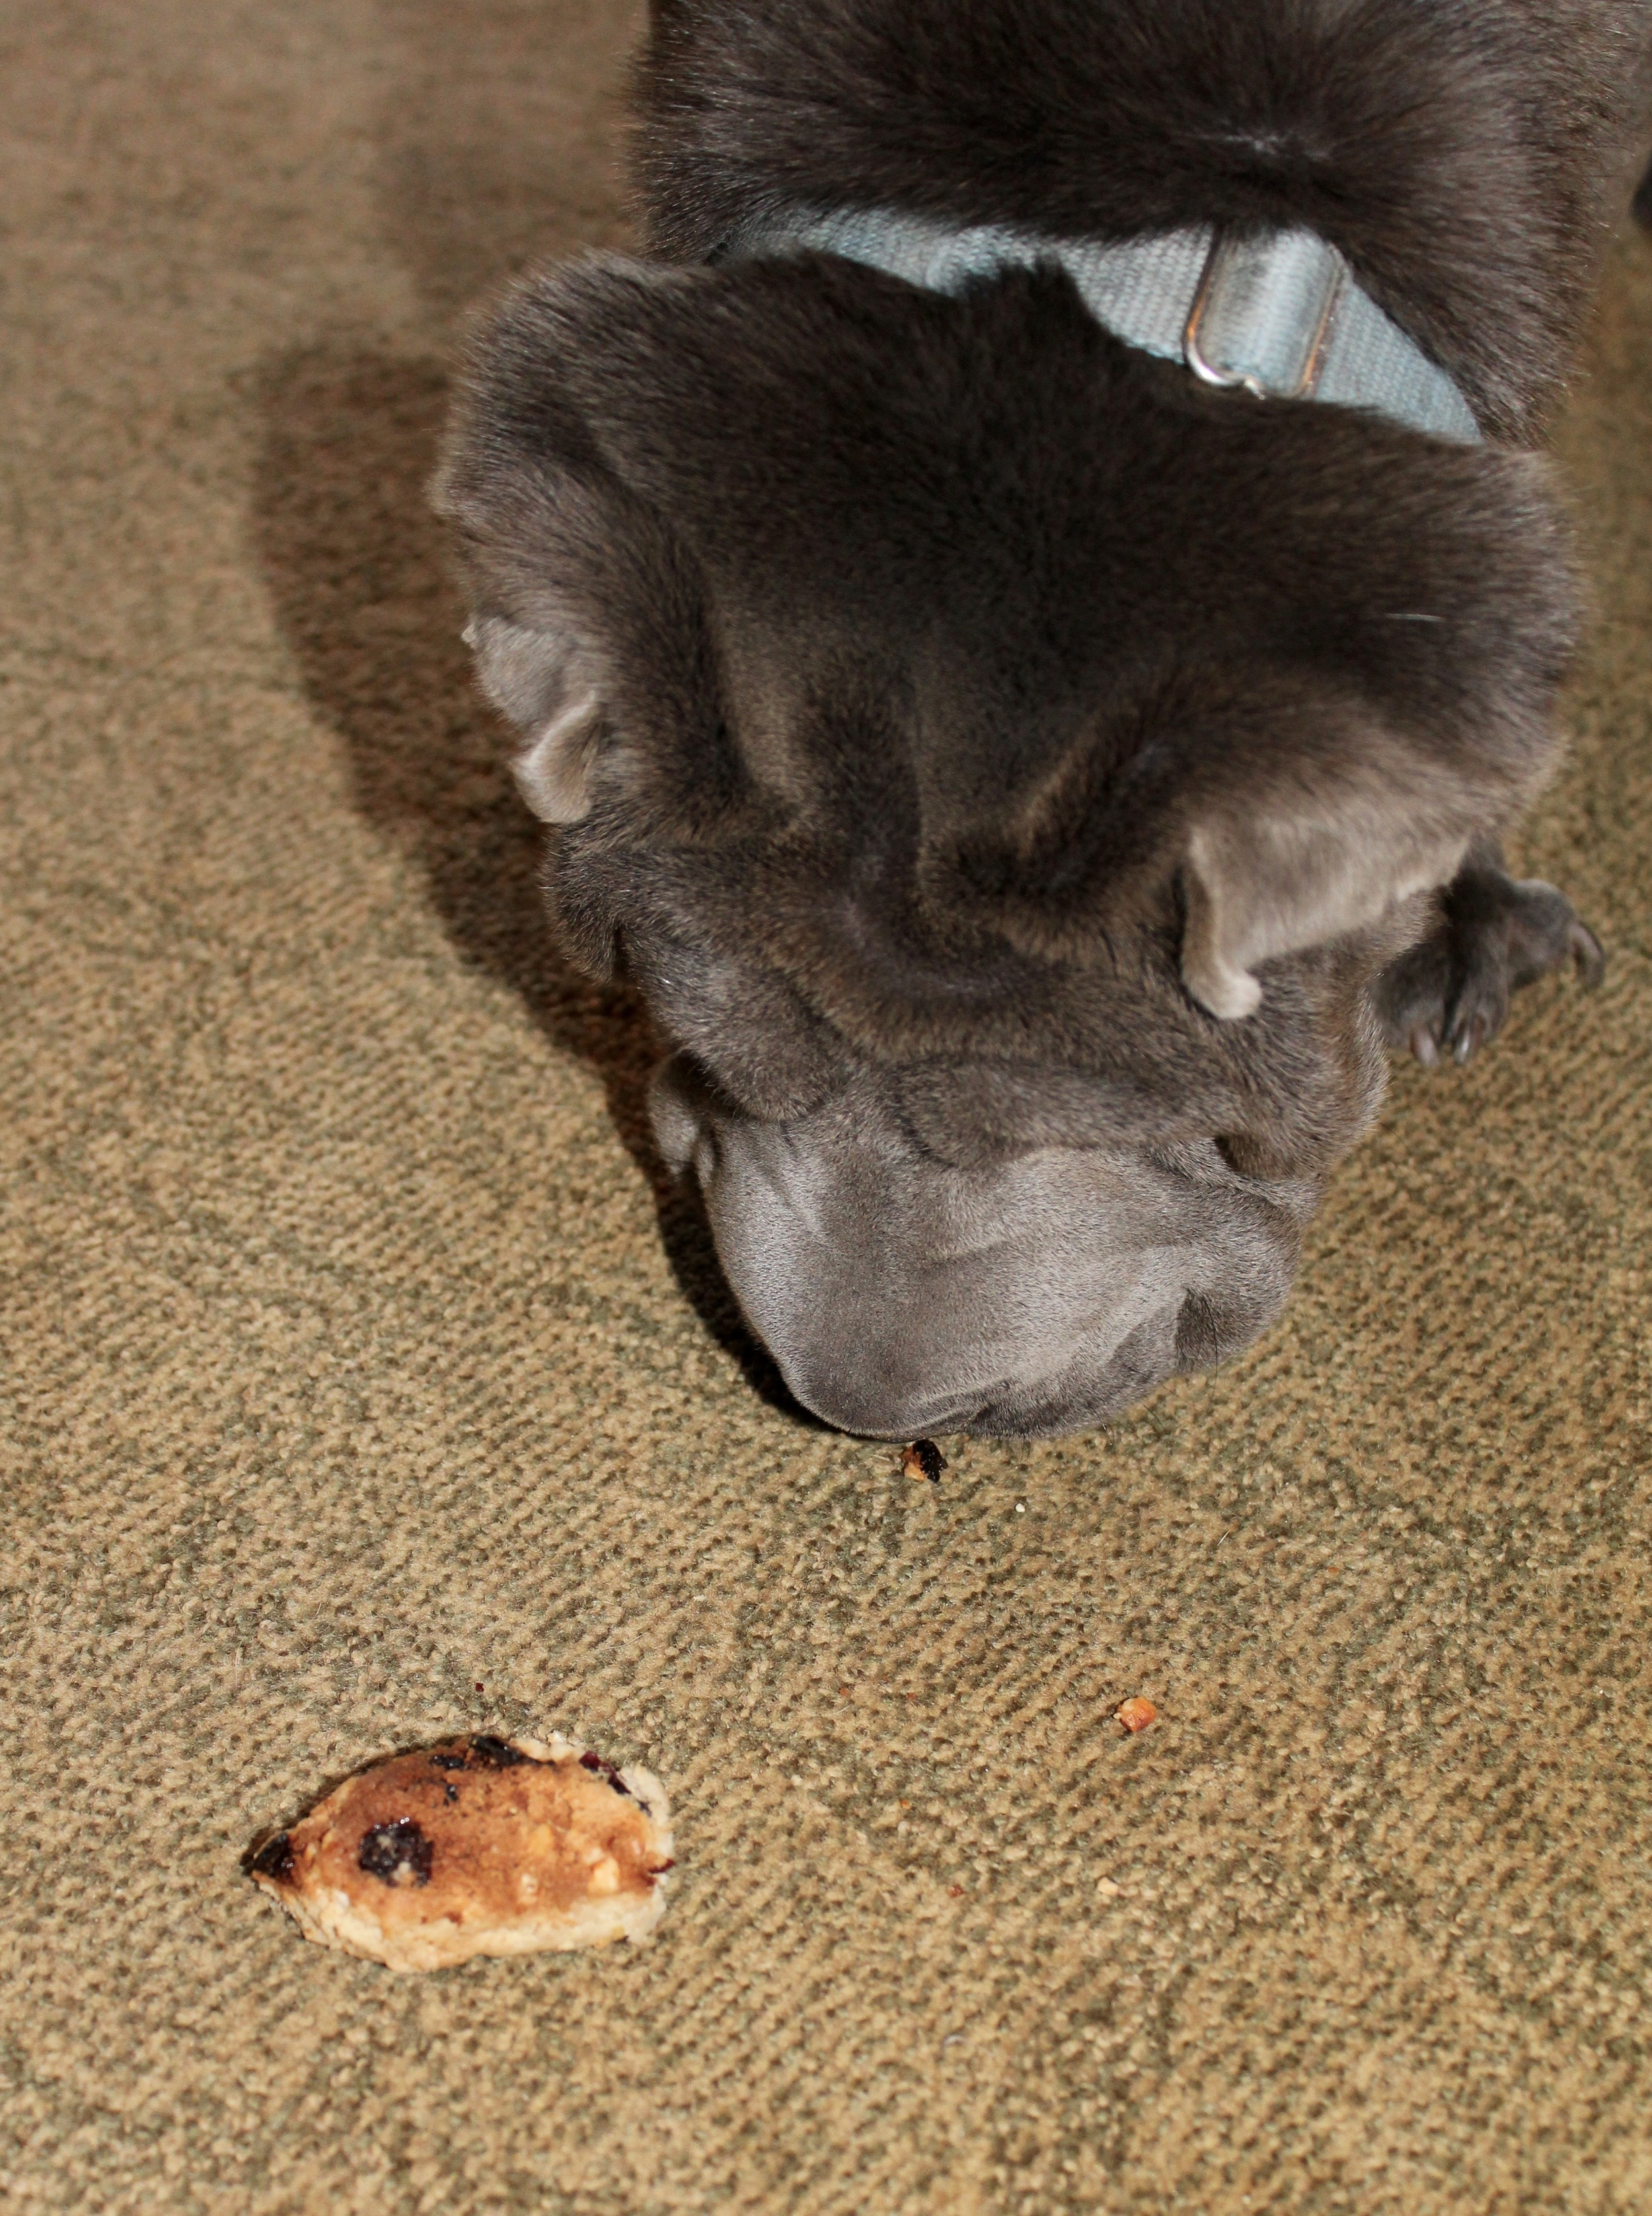 Version 4 was such a failure that the Sharpei spat it out and growled at it.